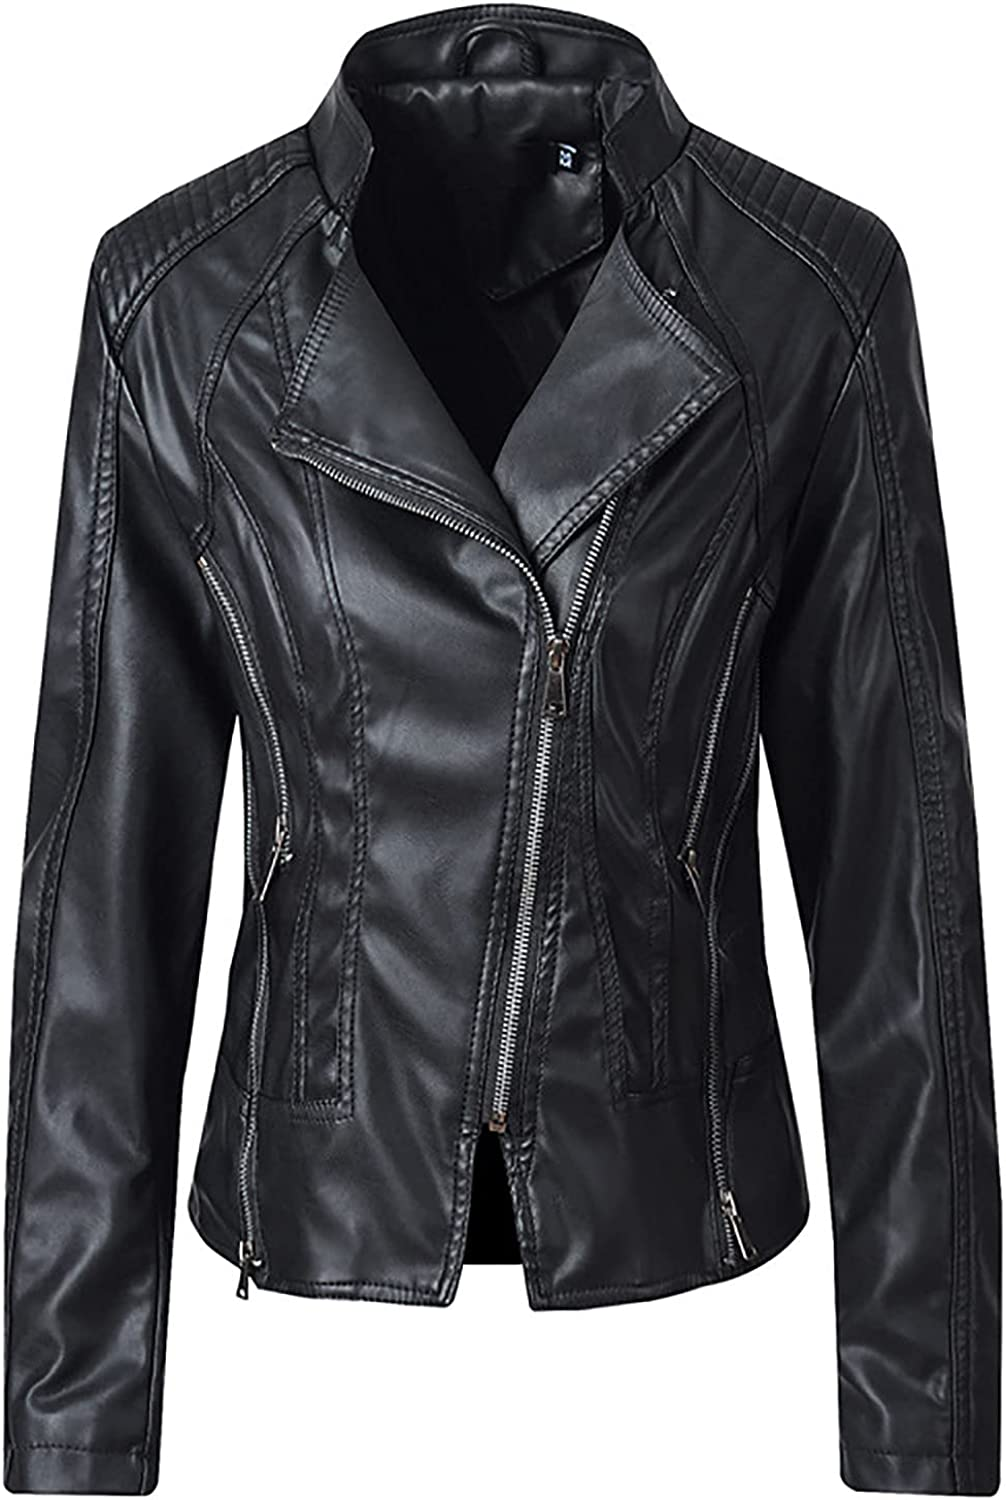 Hefu Womens Faux Leather Jacket Zip Up Motor Biker Jacket Coats Solid Color Short Lightweight Outerwear with Pockets